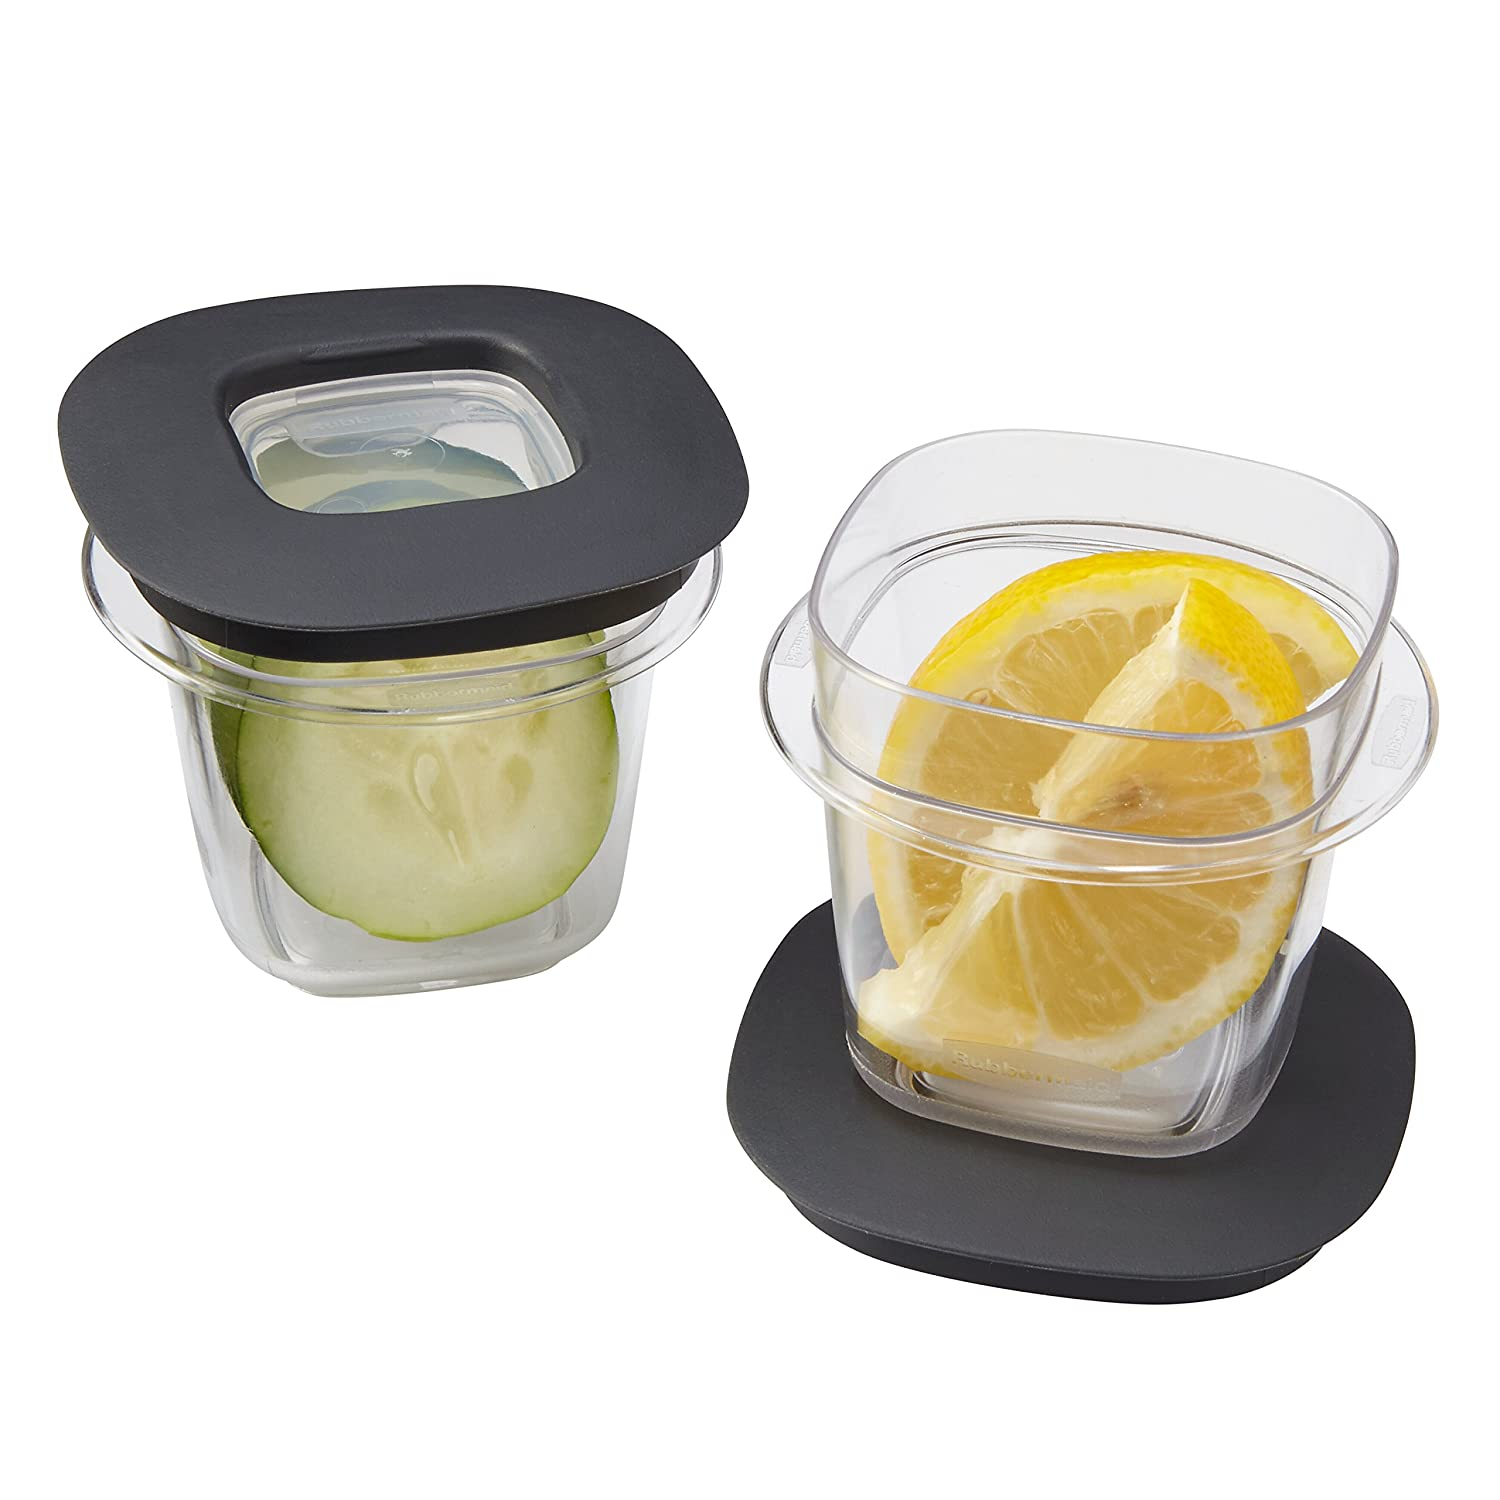 Rubbermaid 1937645 Premier Food Storage Containers, 0.5-Cup, 2-Pack, Grey